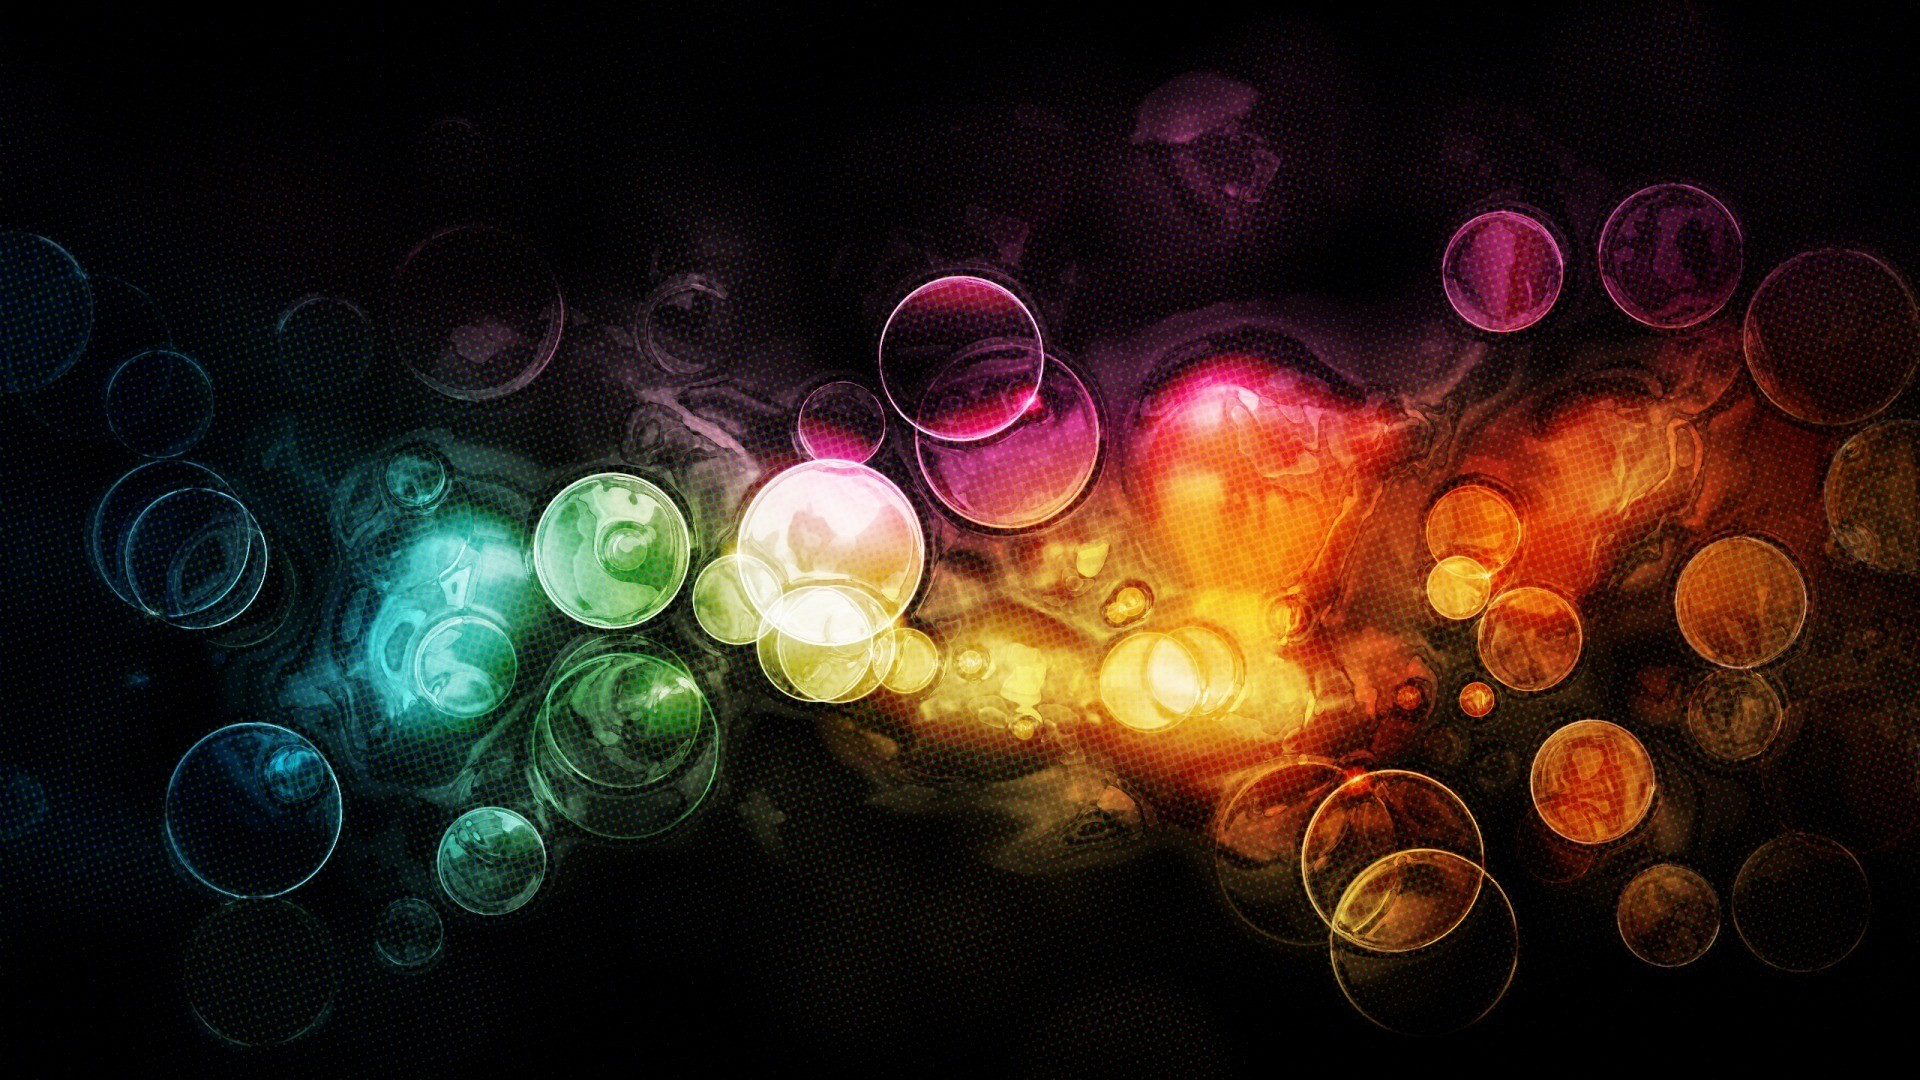 80+ 1920x1080 wallpapers abstract ·① download free beautiful full